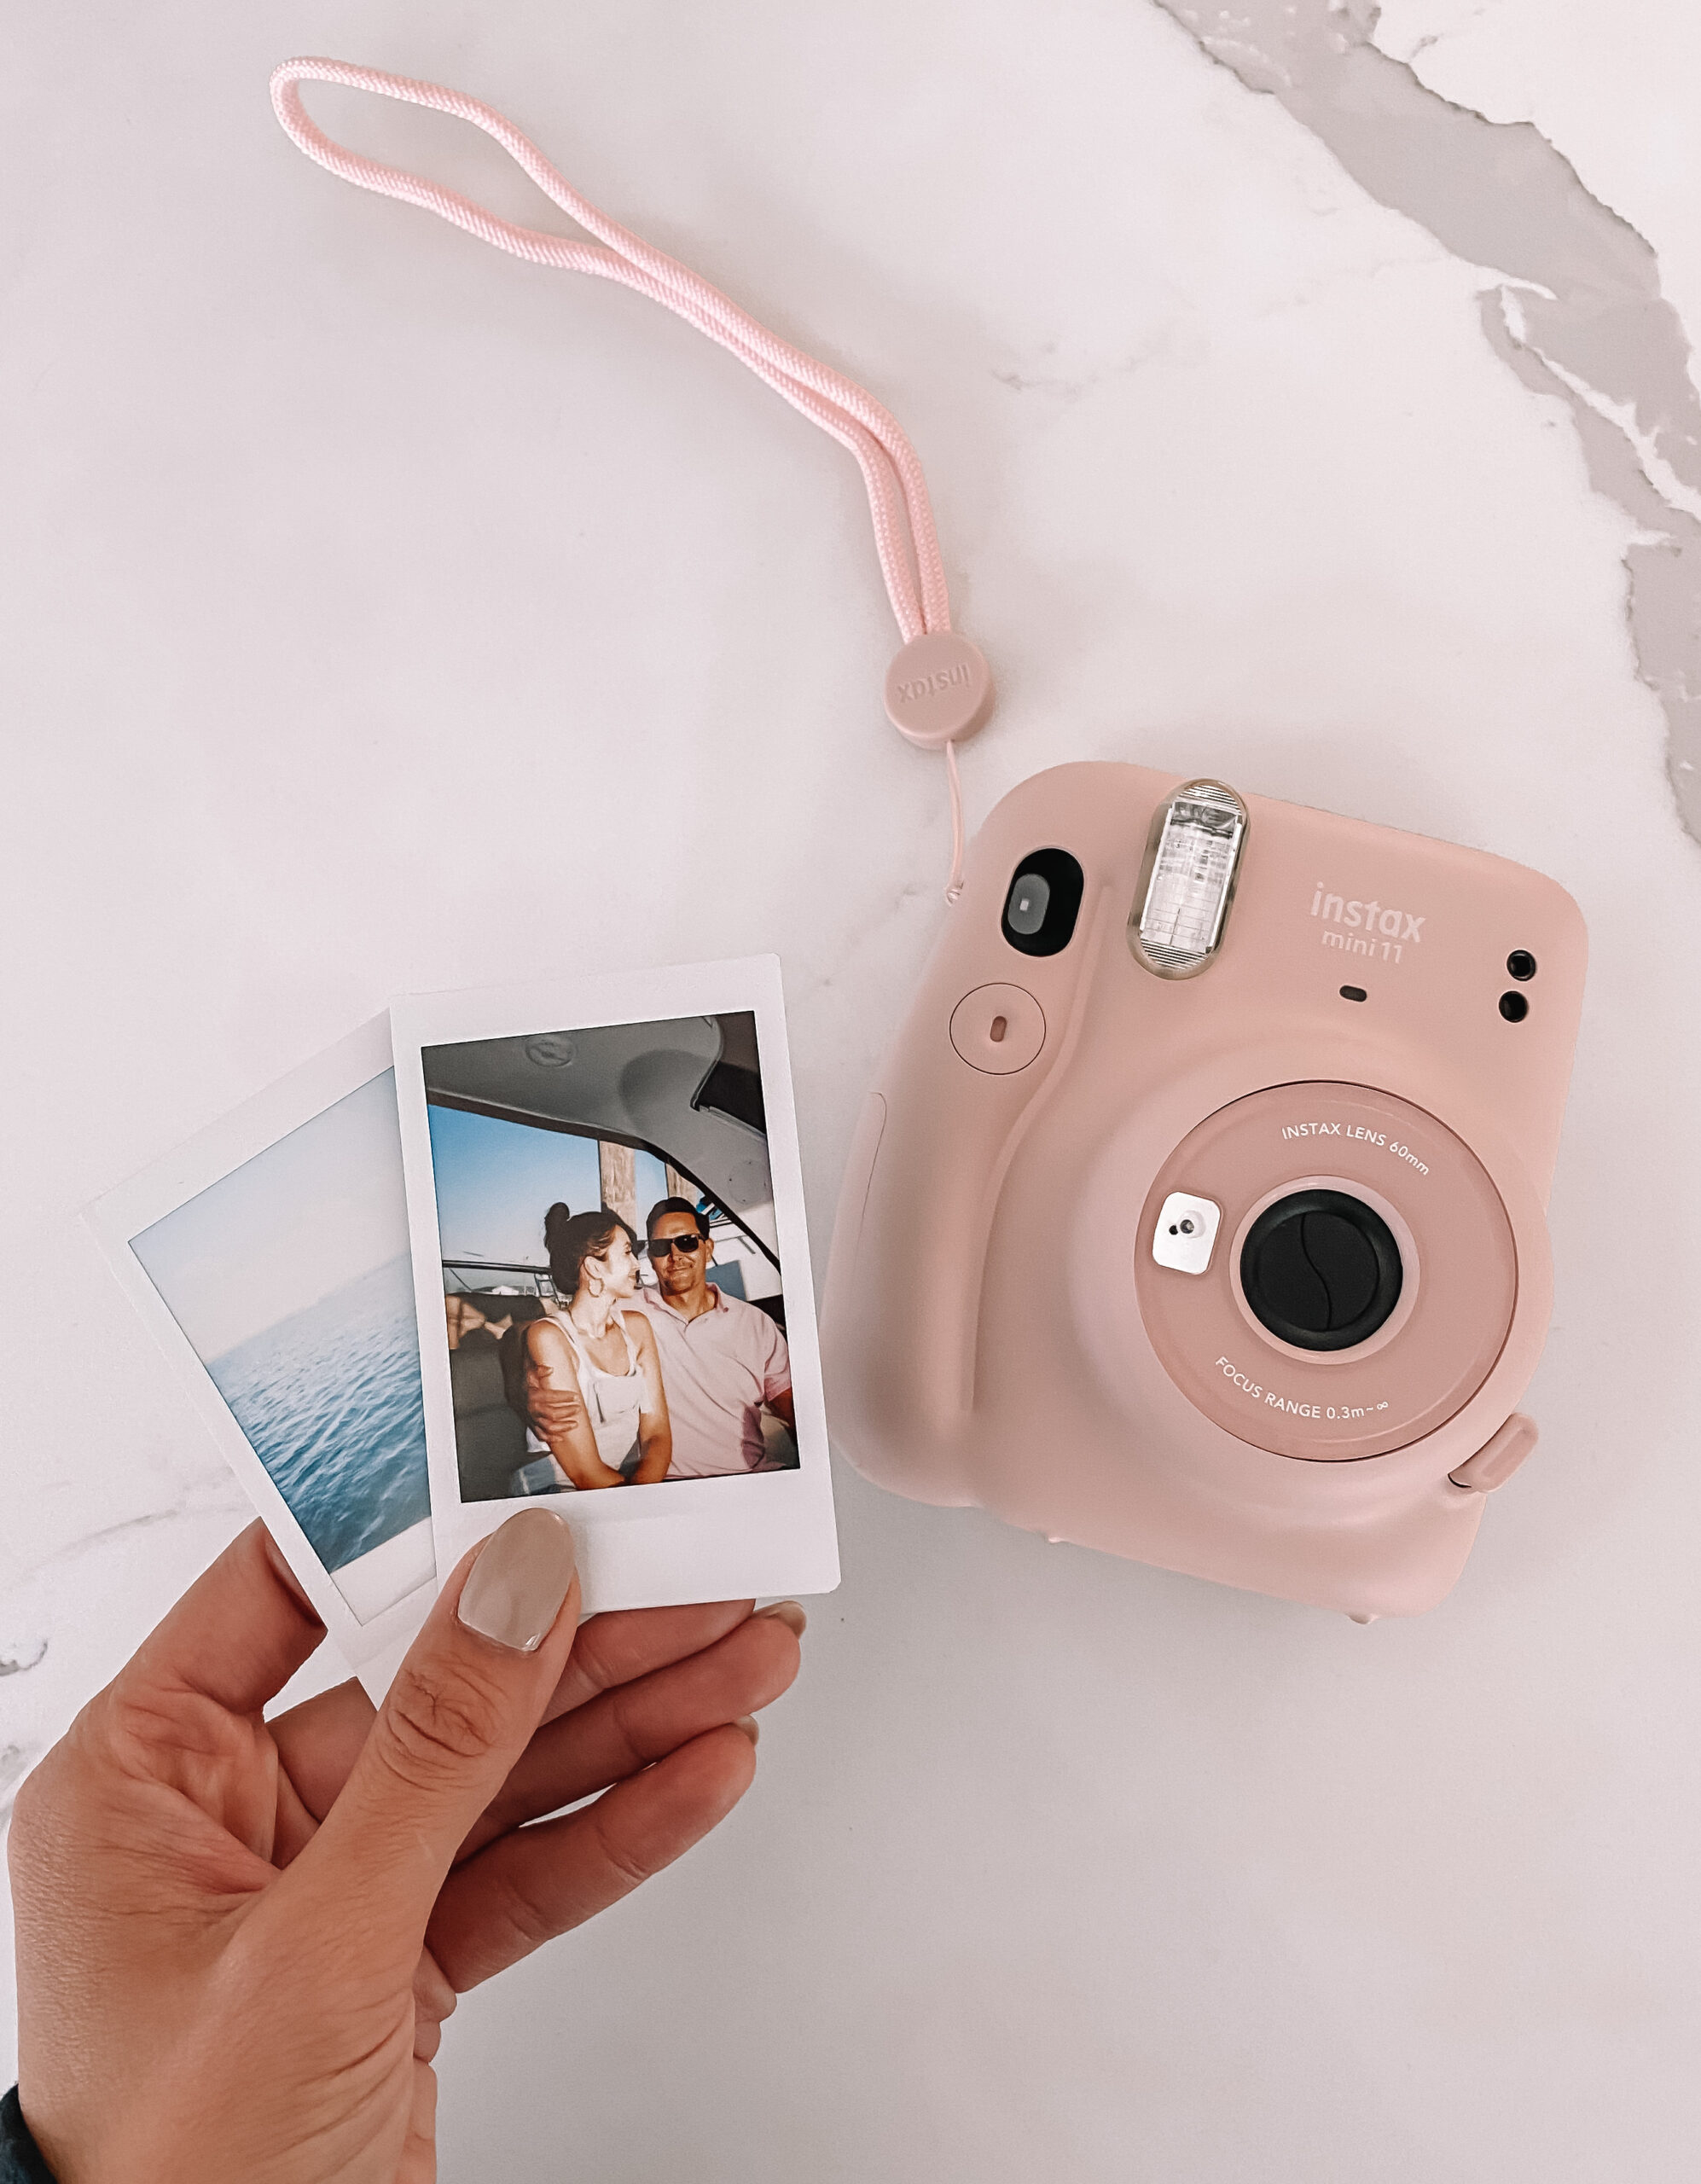 amazon finds, instax camera